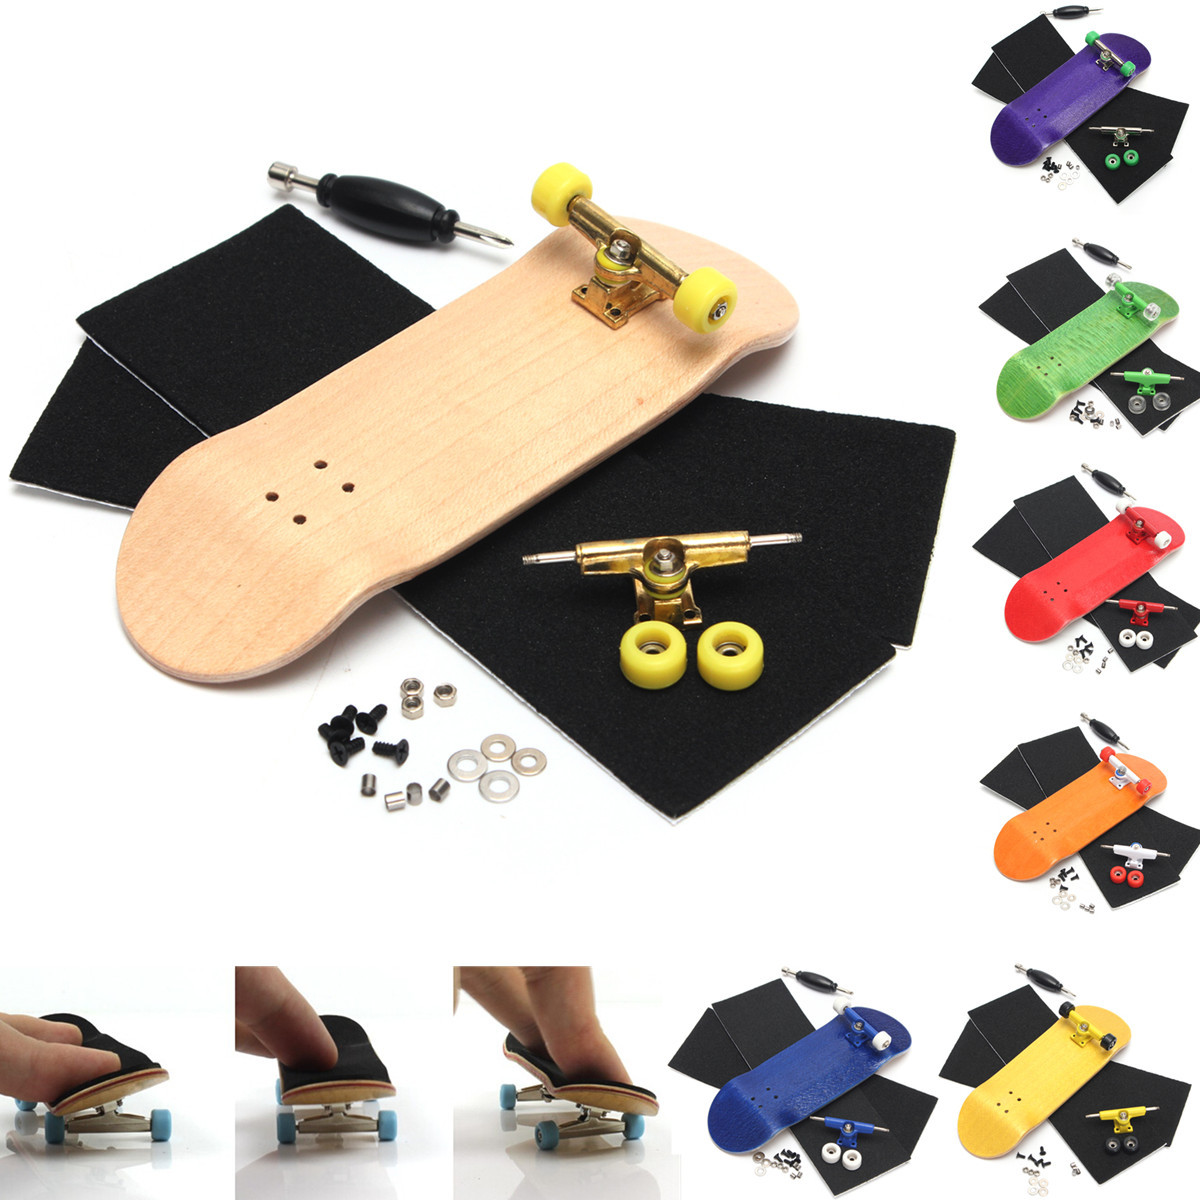 Wooden Fingerboard Professional Finger Skate Board Wood Fingerboars With Bearings Wheel Foam Tape Set Gift For Kids Children